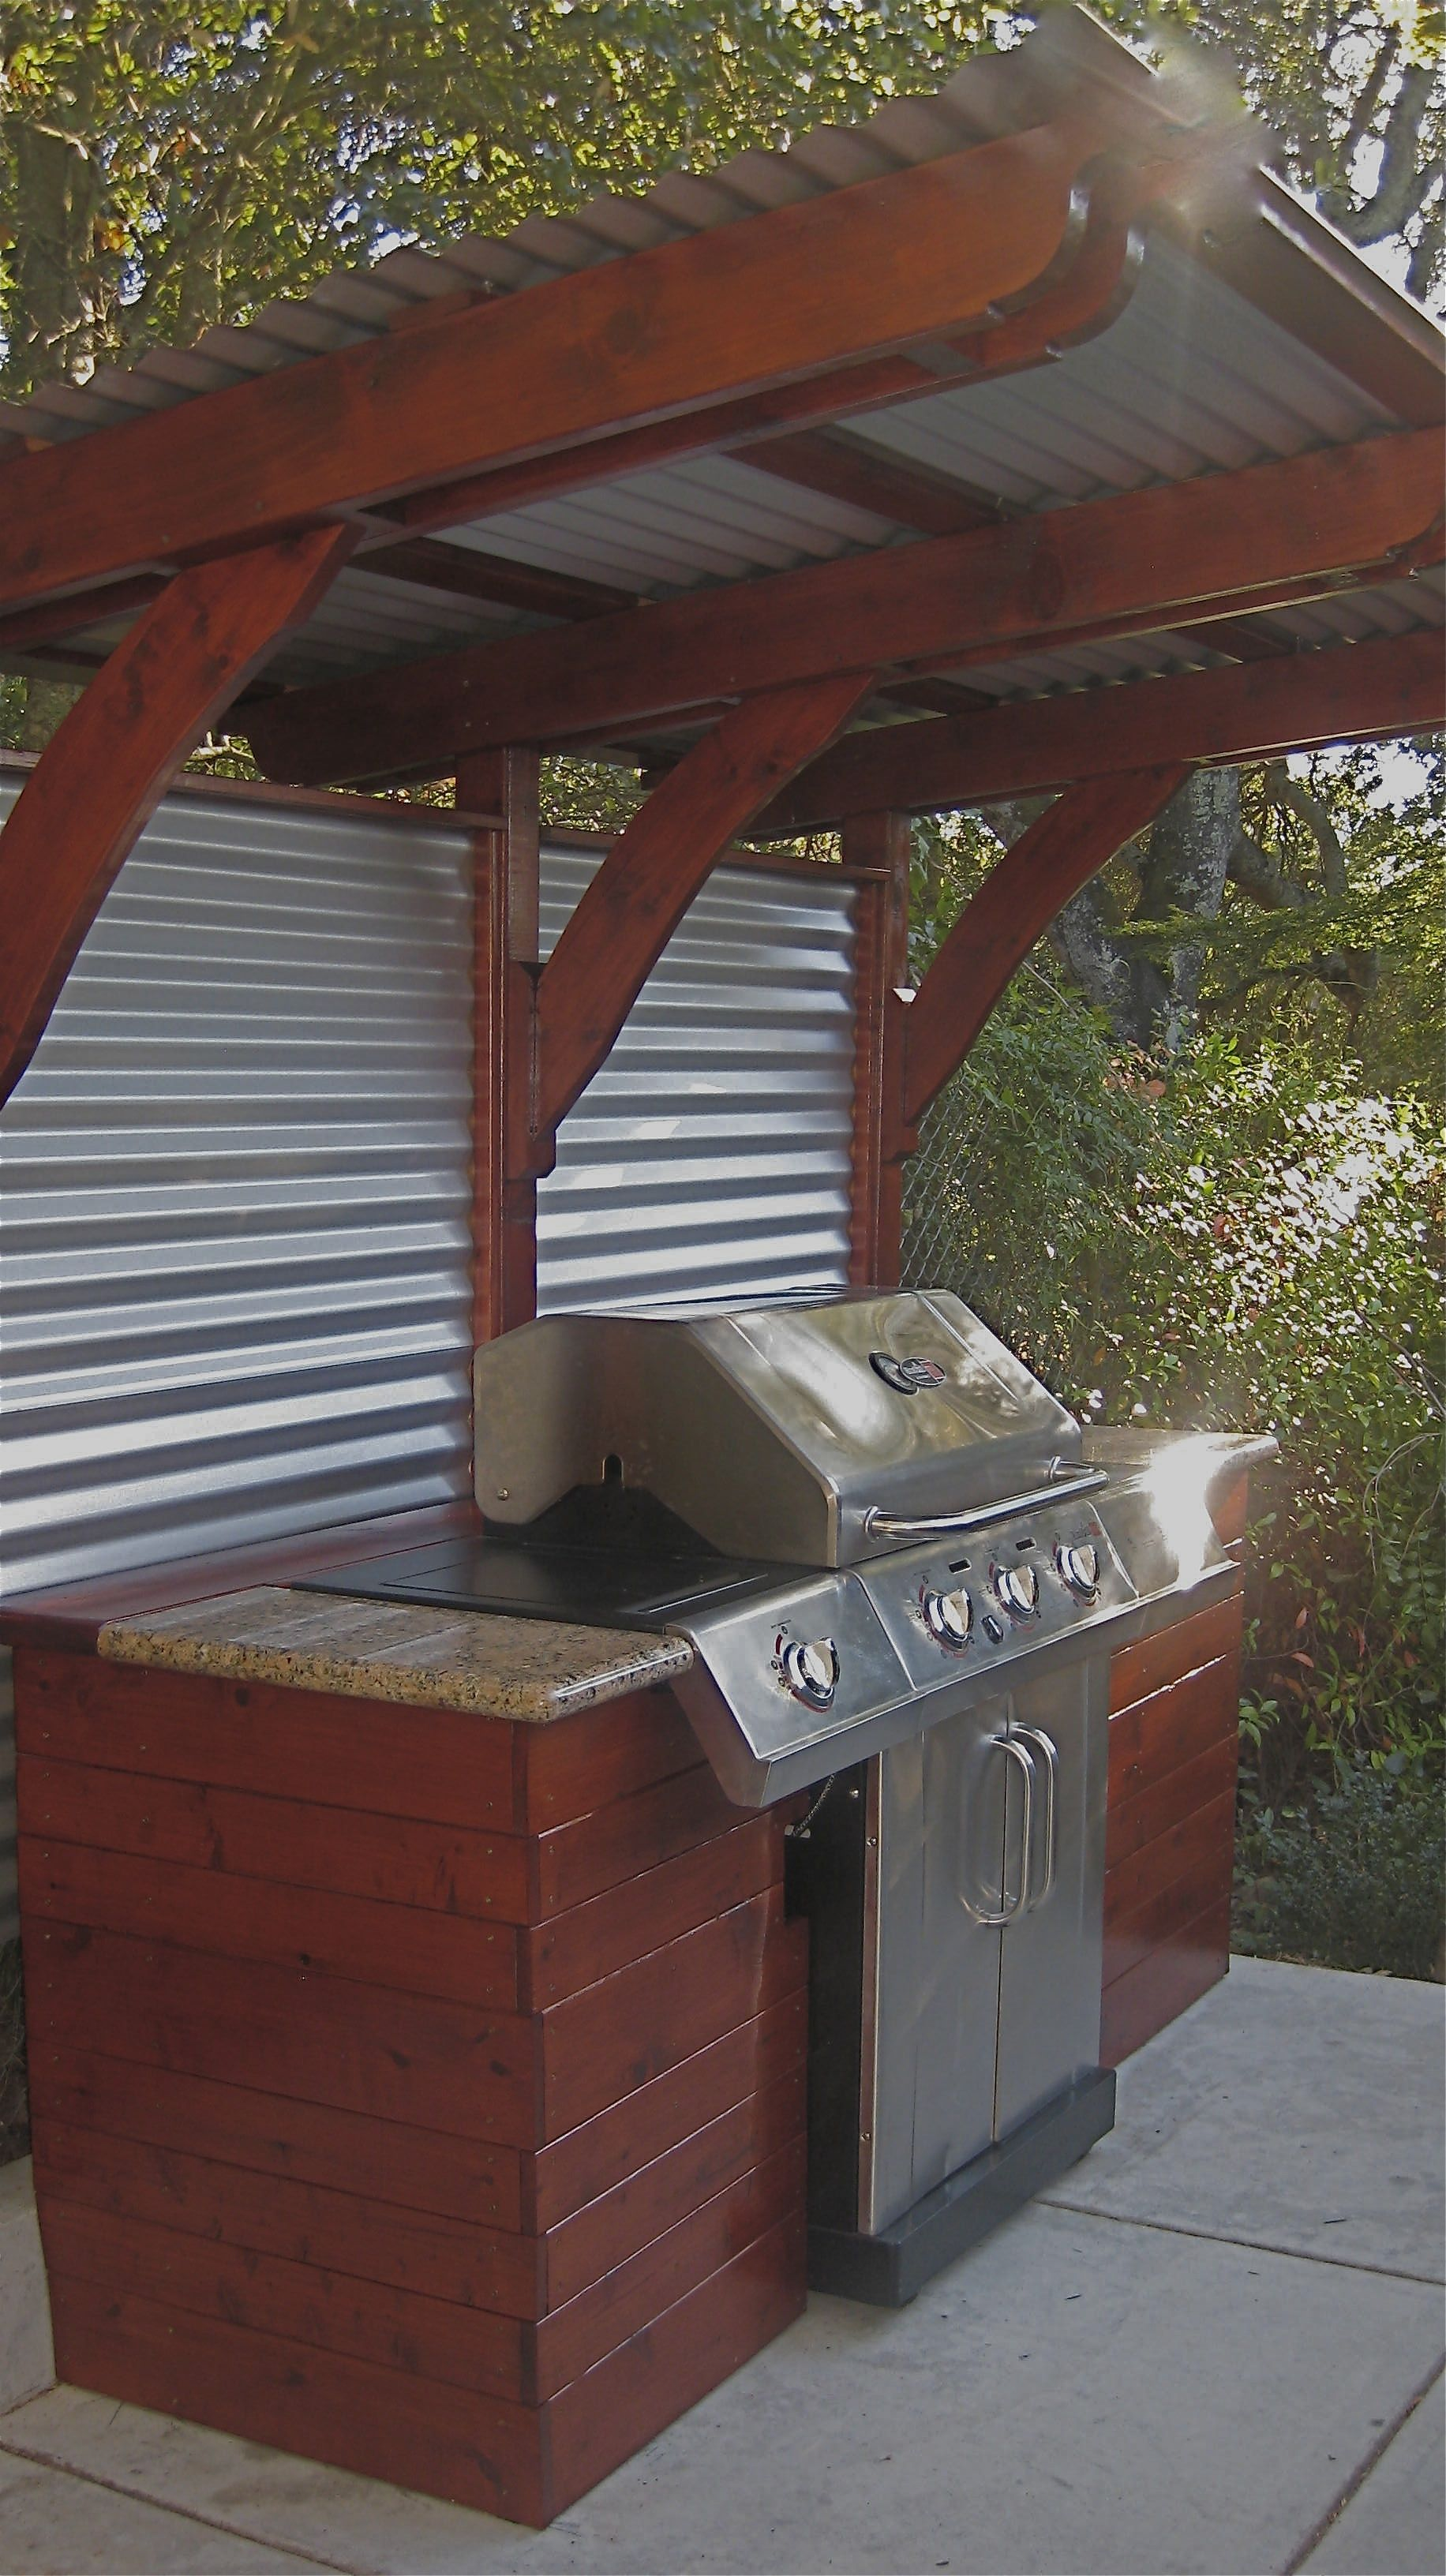 Diy Corrugated Patio Cover: Restoration Wood Panels And Corrugated Metal Siding, For